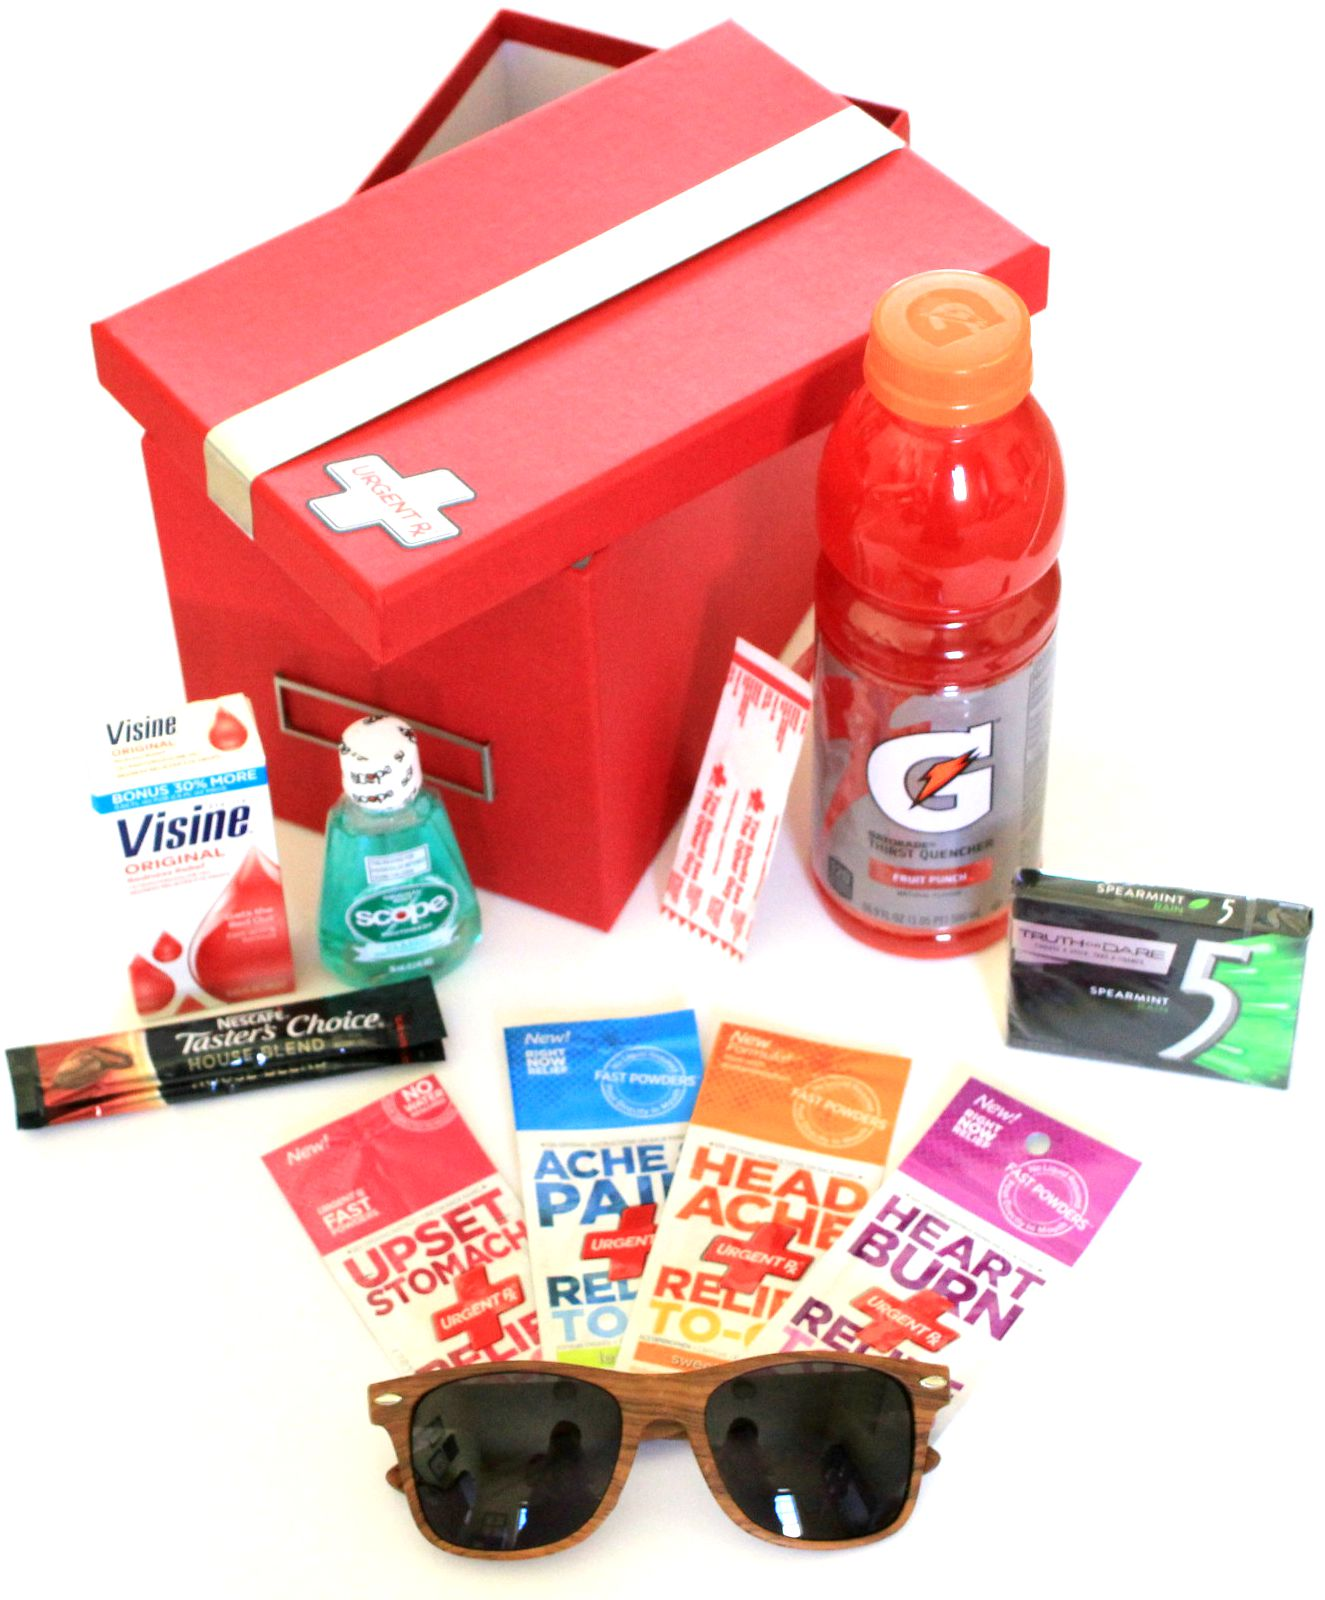 Attractive Se Bachelor Party Recovery Kits From Makers Fastpowders Groomsmen Gifts Bachelor Party Gifts Bachelor Party Gifts Ideas gifts Bachelor Party Gifts